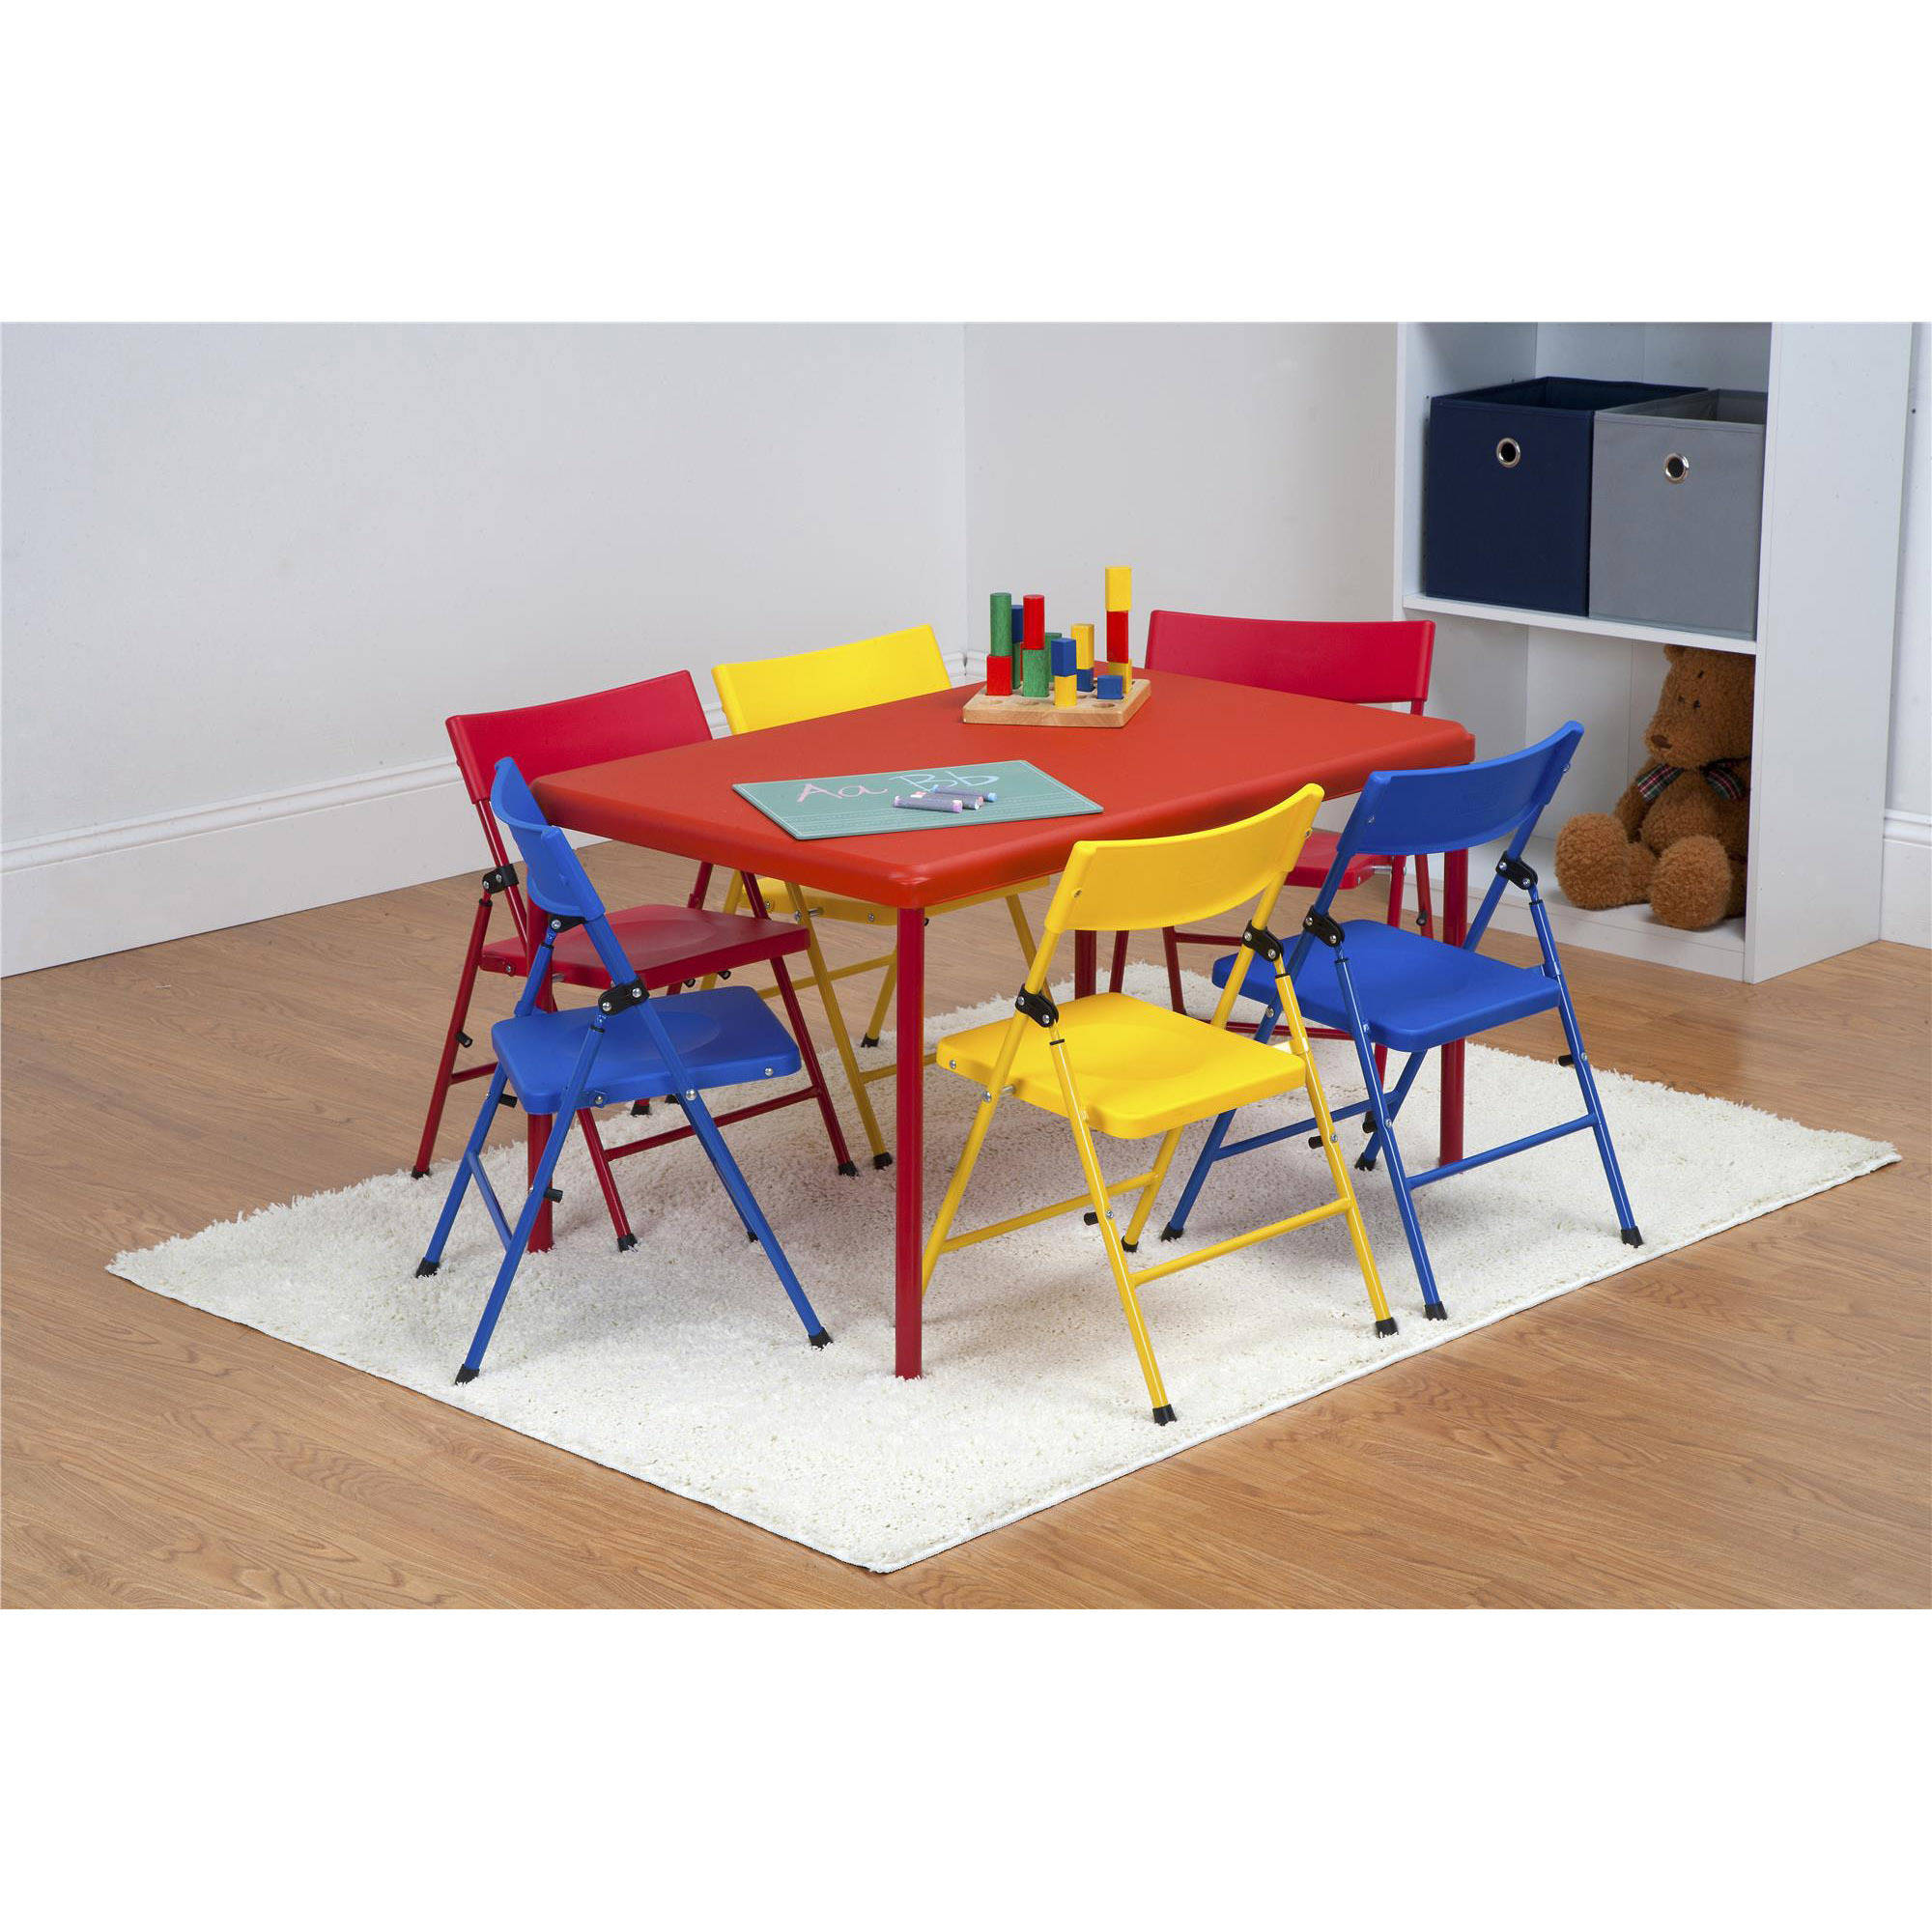 Toddler Folding Table And Chairs - Safety first 7 piece children s juvenile set with pinch free folding chairs and screw